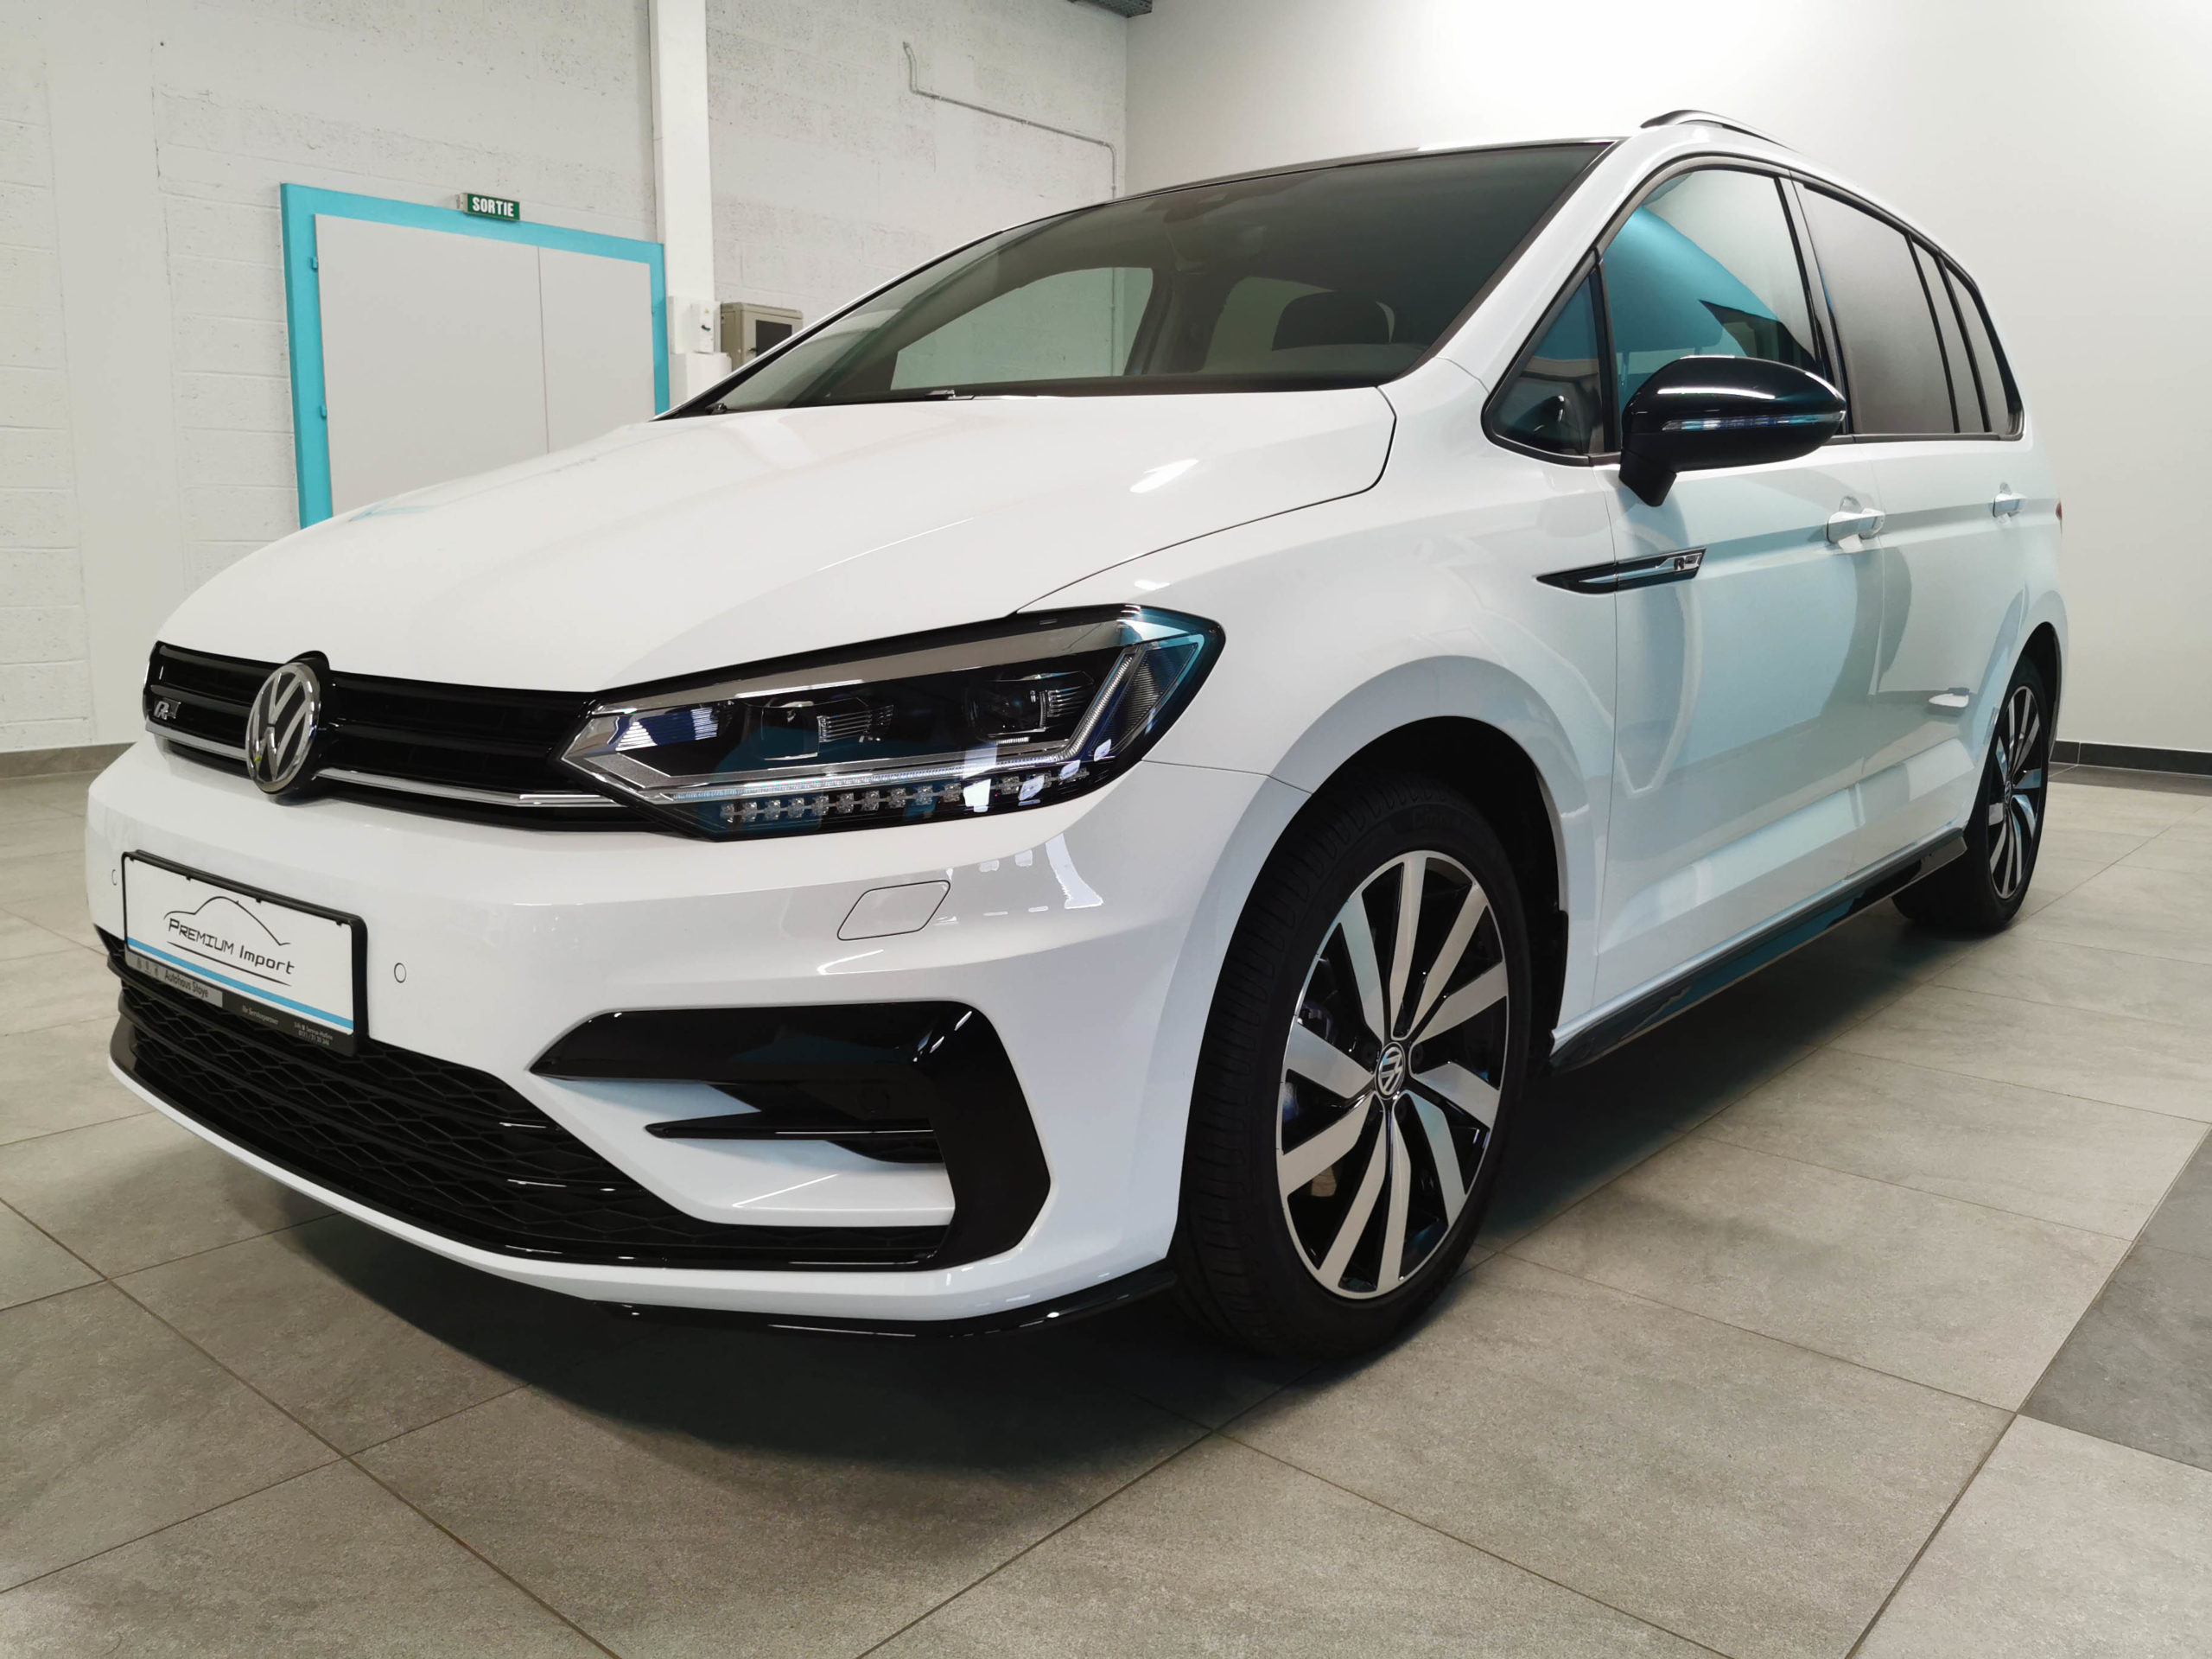 Read more about the article VW Touran R-Line 2.0 TDI – DSG